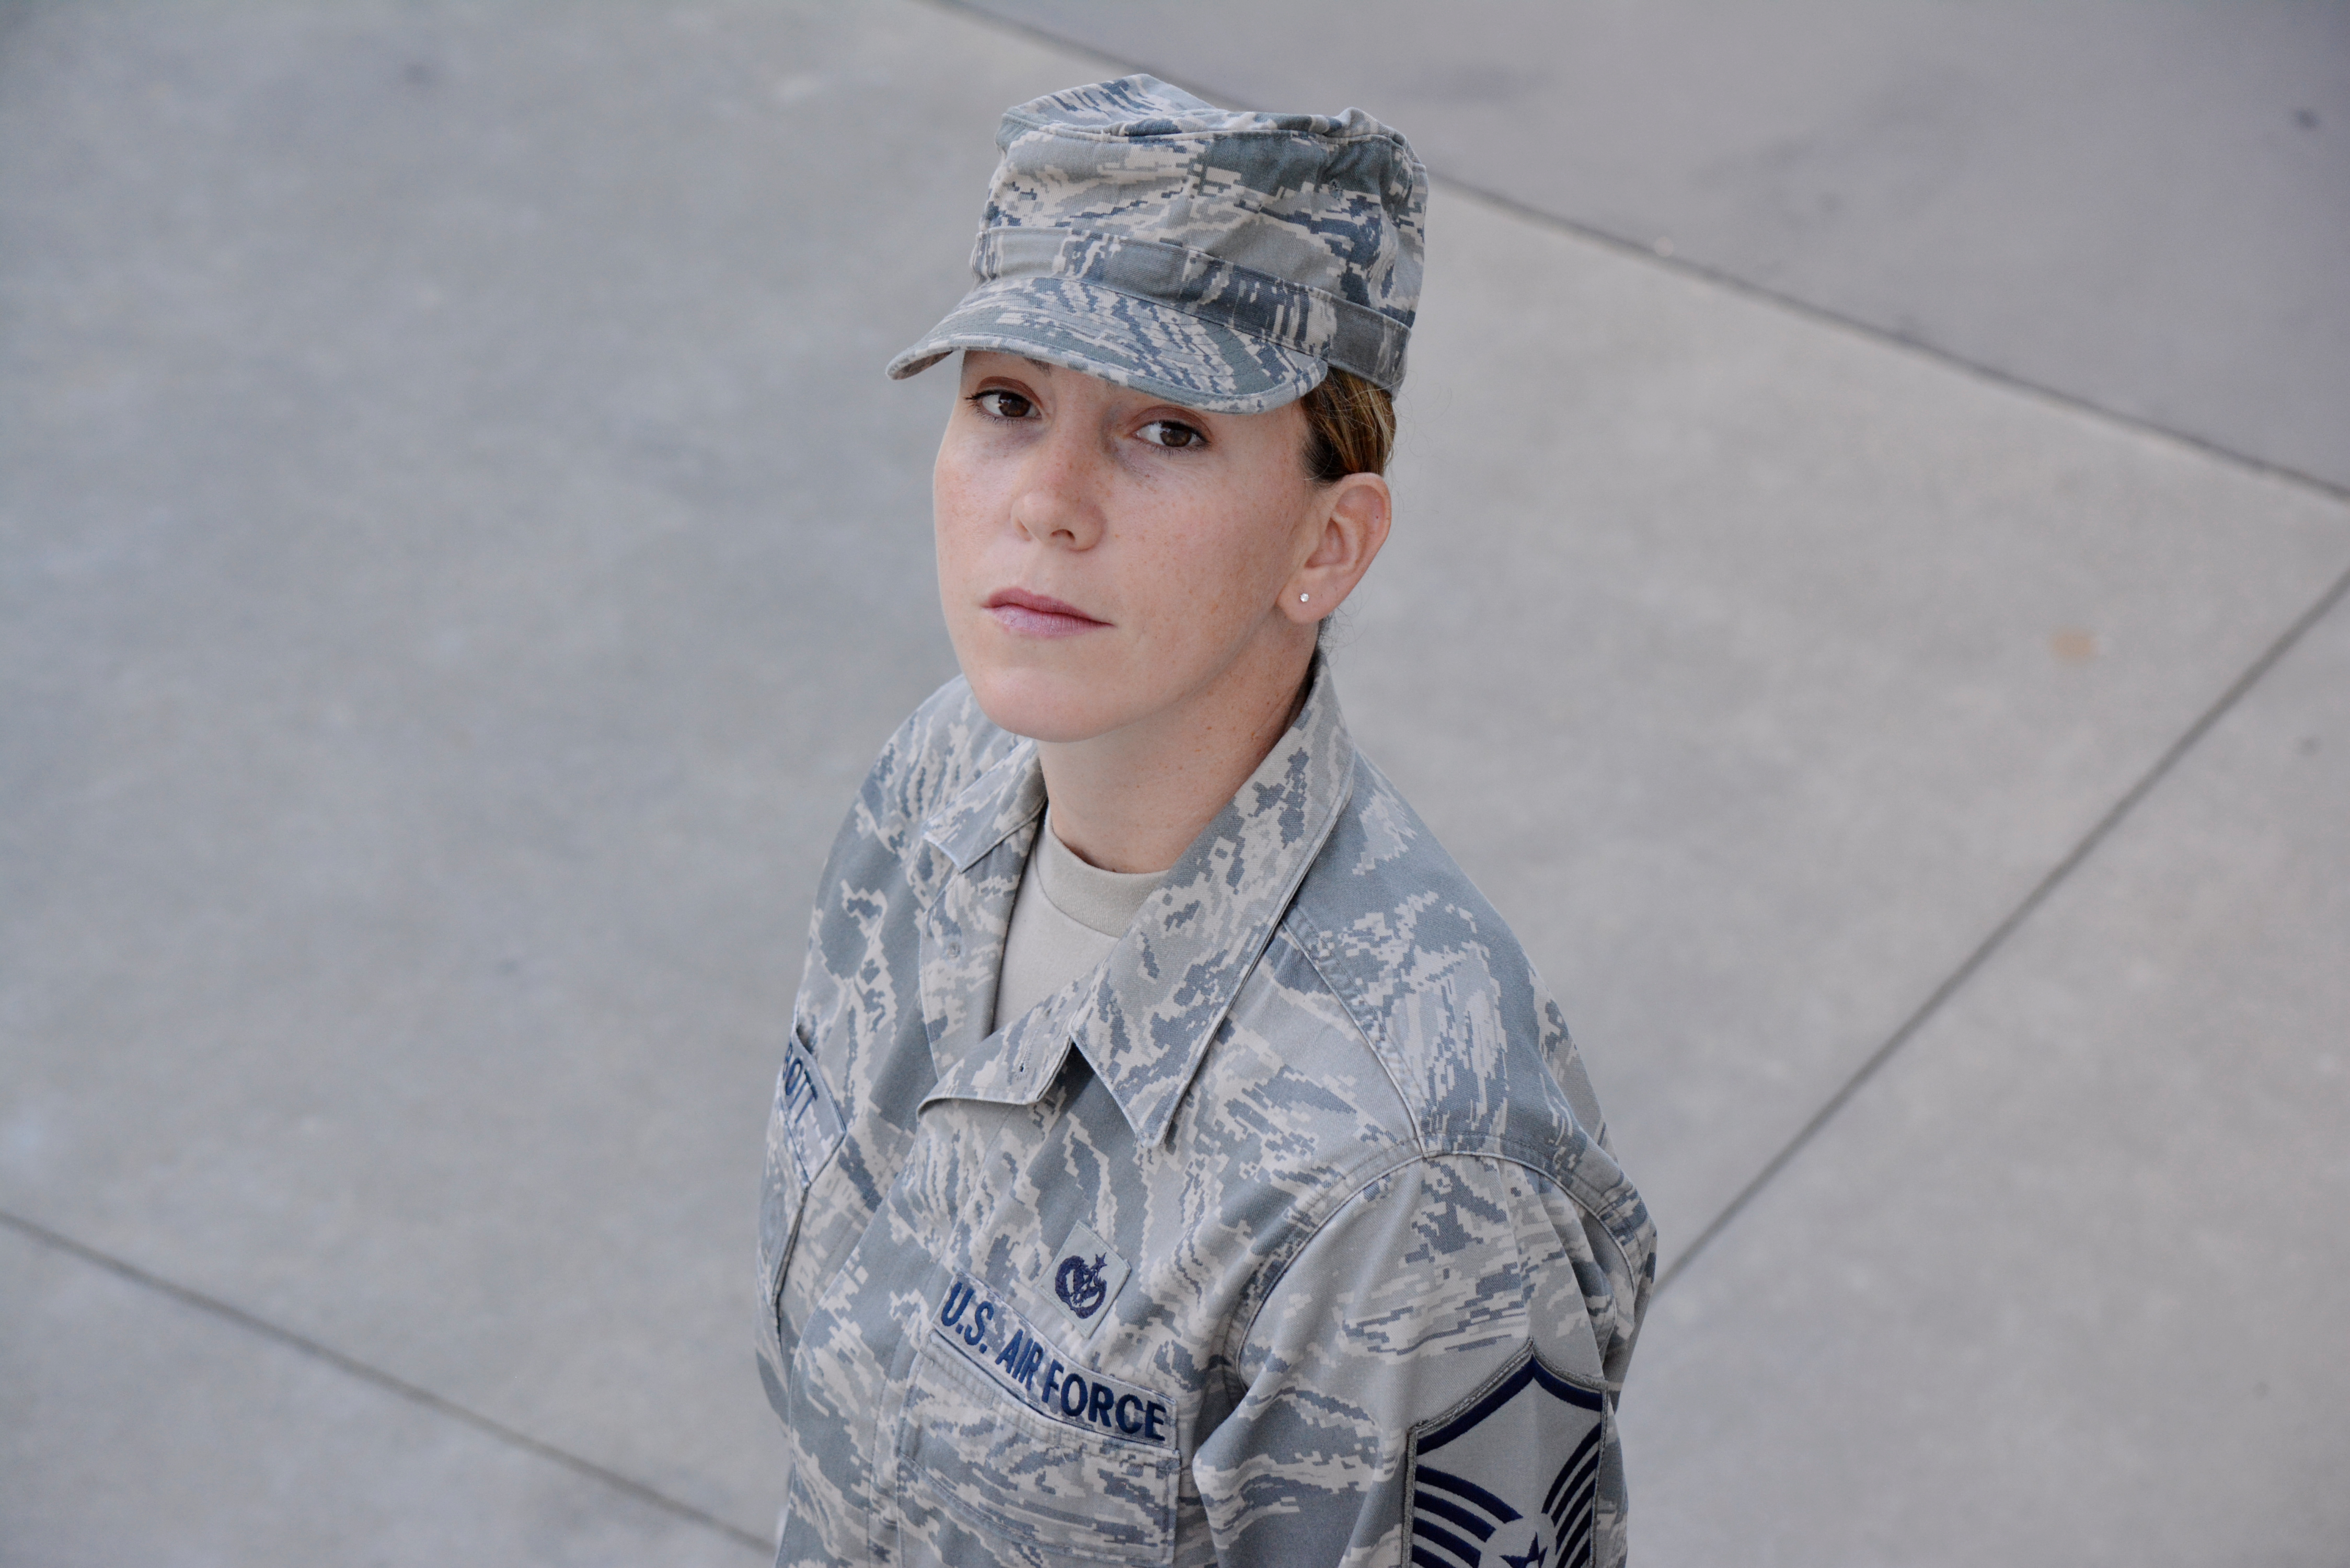 Airforce student